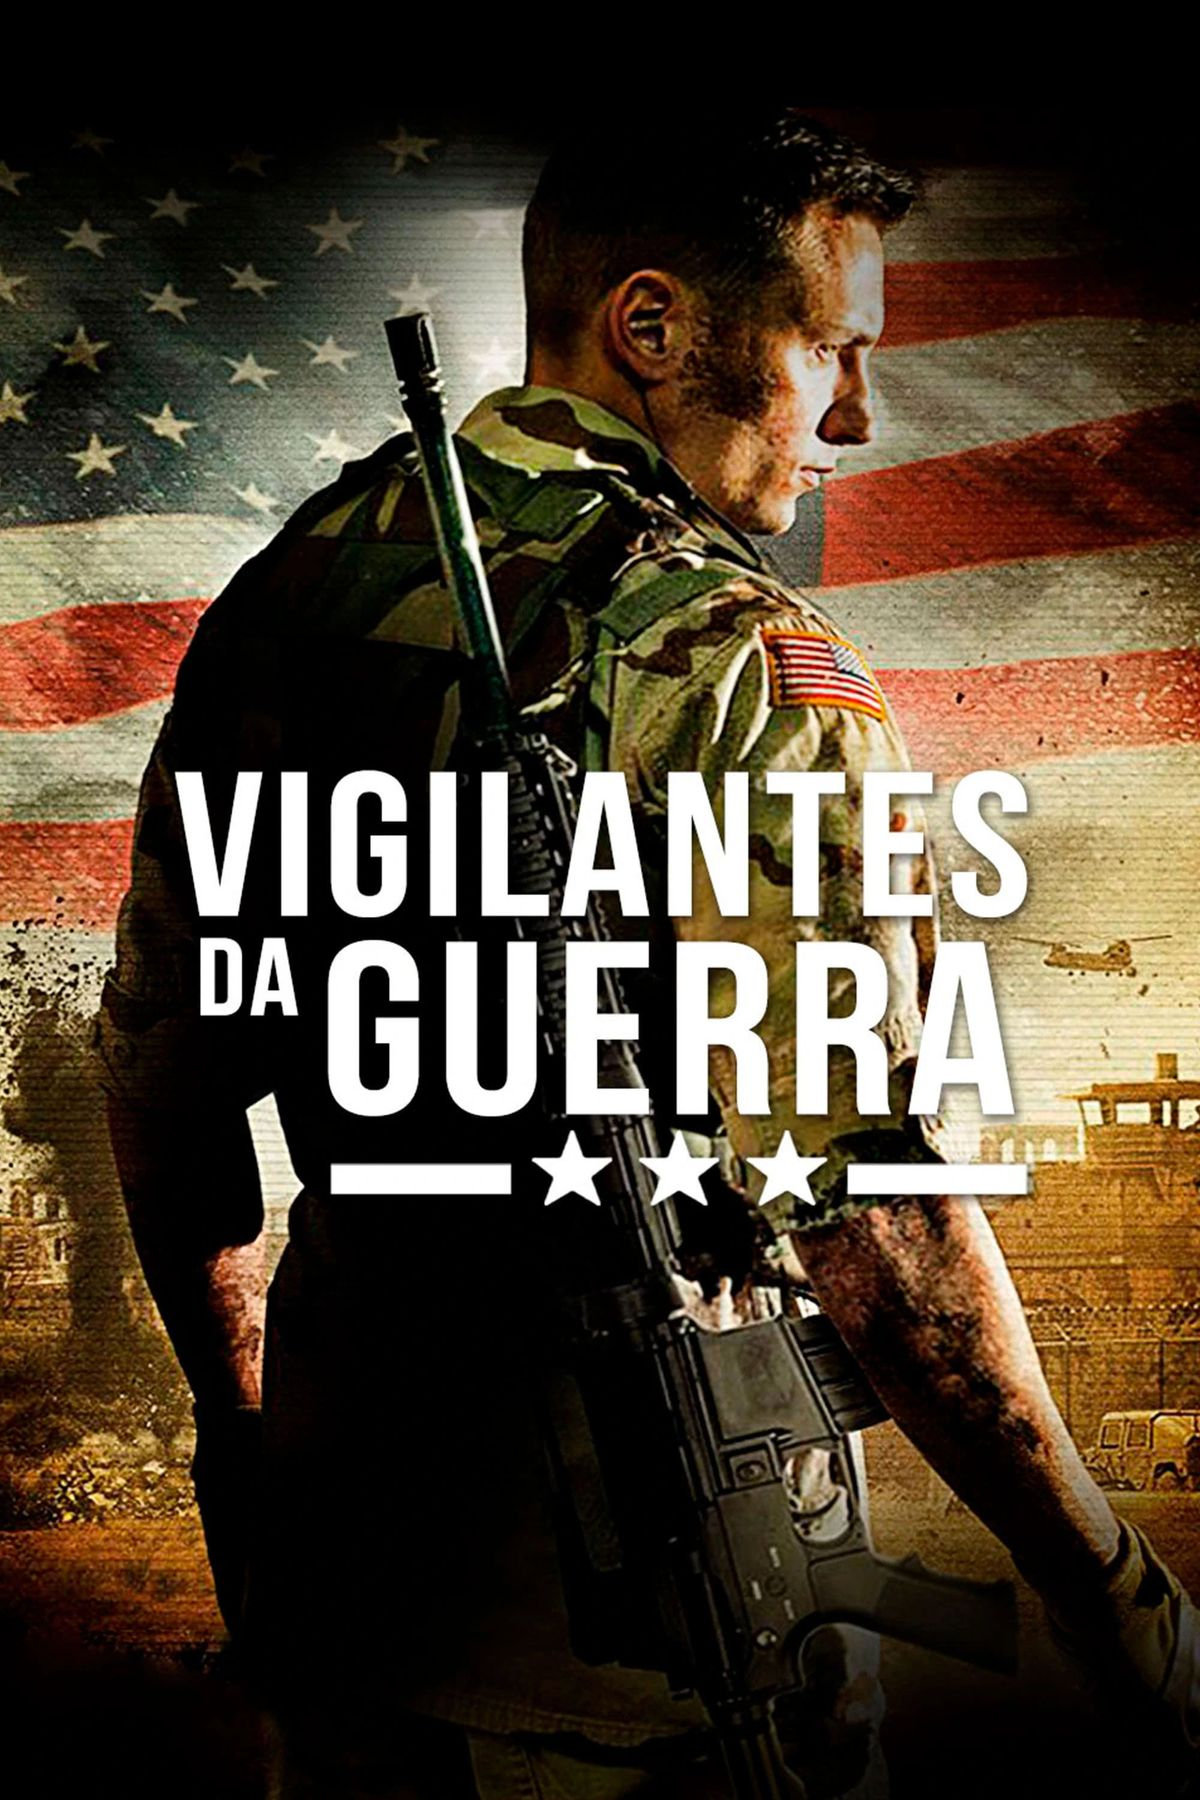 Rick Vargas Best Movies, TV Shows and Web Series List